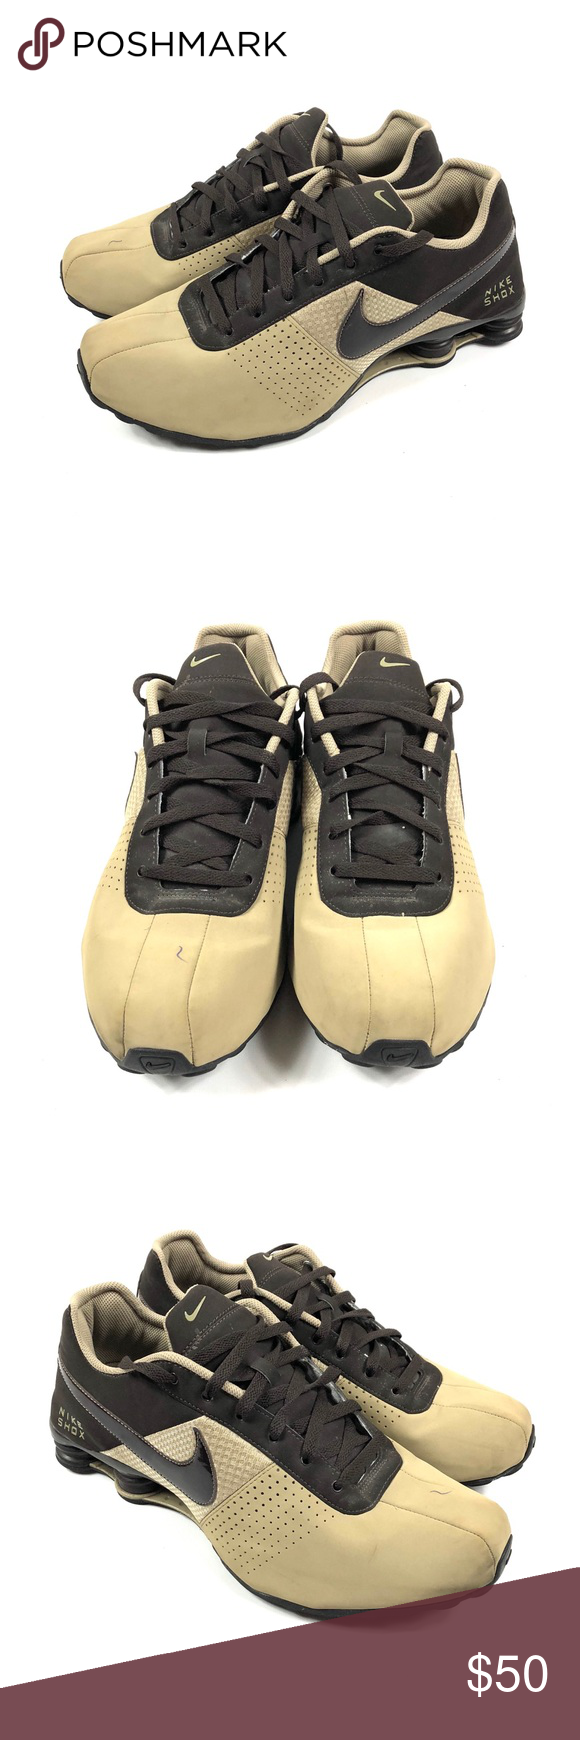 super popular a1344 d8632 Nike Shox Deliver Brown Leather Bamboo Pre-owned. Good condition. Only  issue would be the pen mark on the right toe of the shoe. Nike Shoes  Athletic Shoes